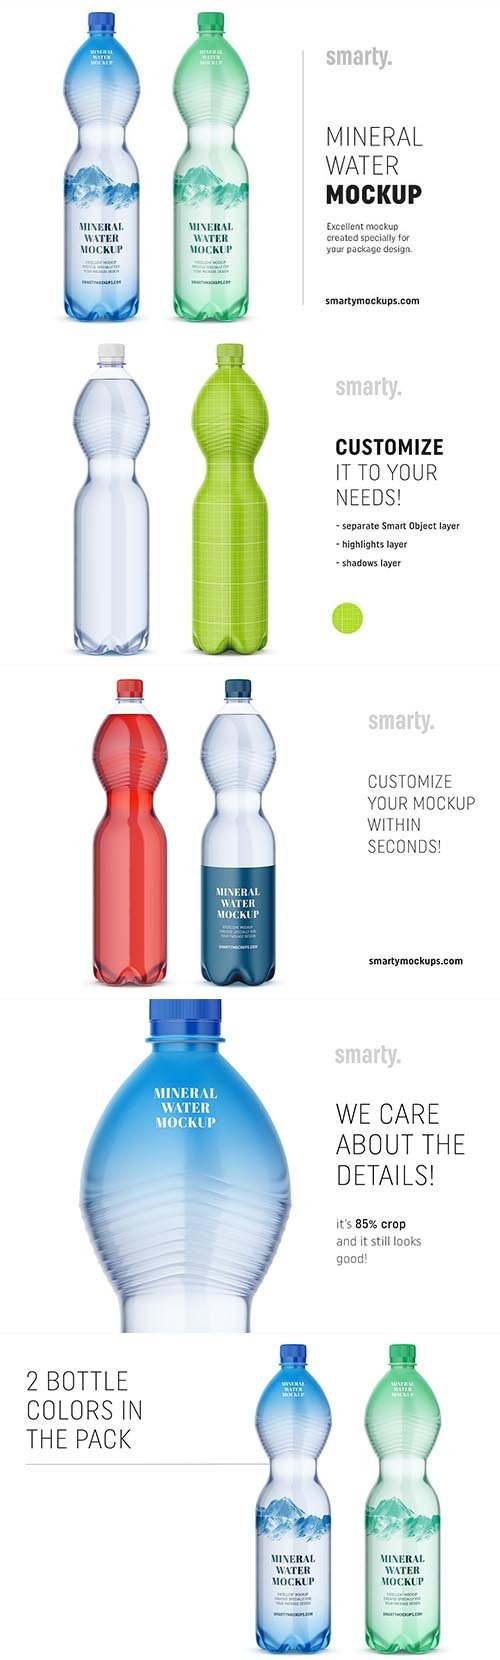 CreativeMarket - Mineral water bottle mockup 2956913